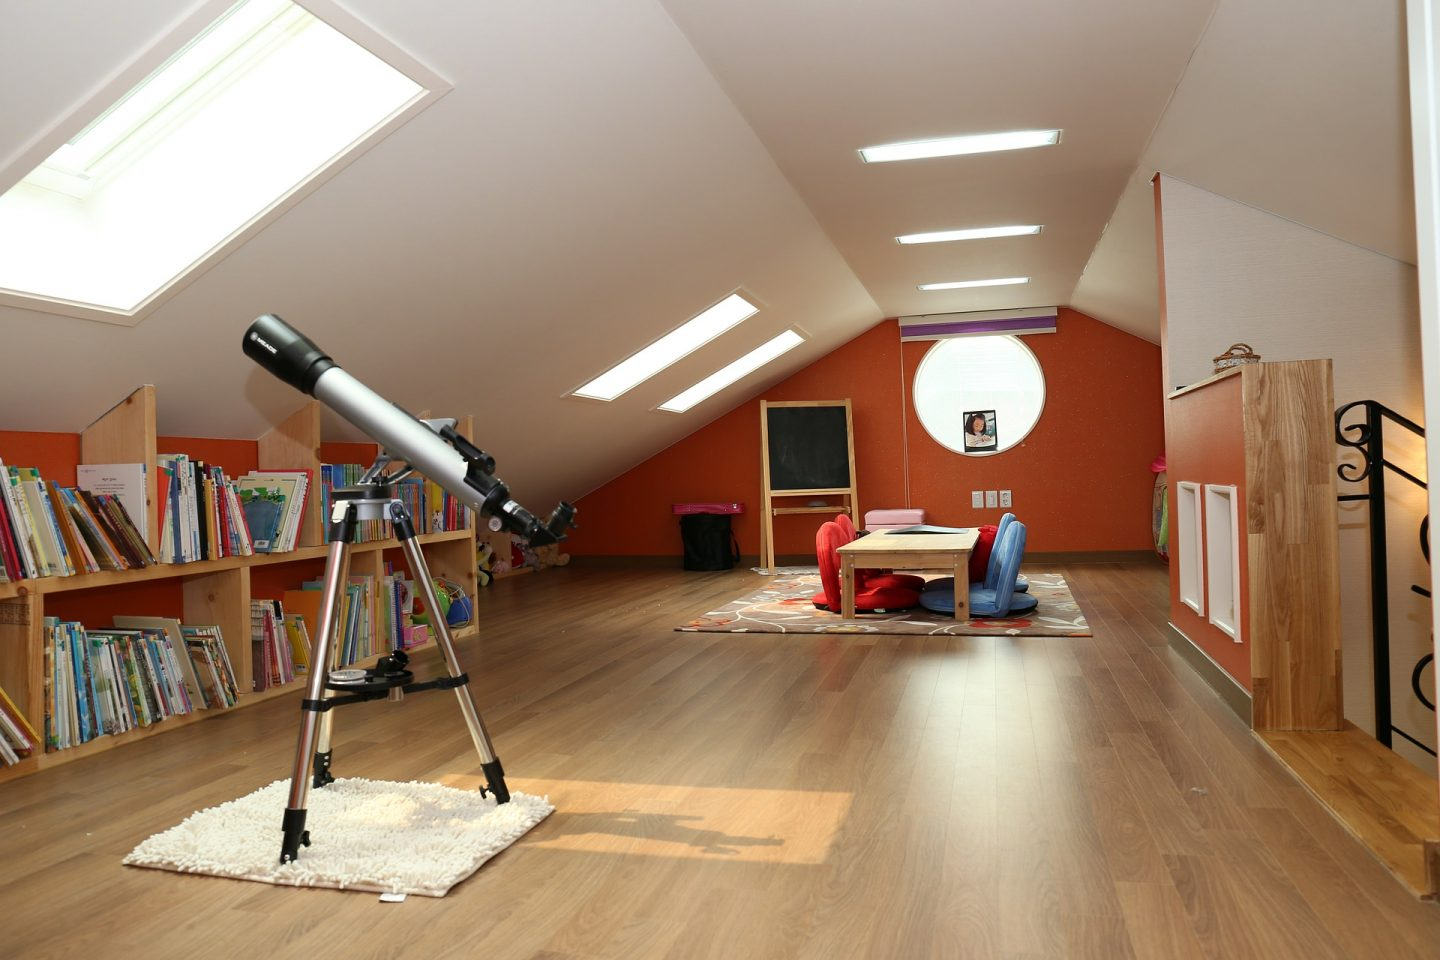 THE ENTREPRENEURS GUIDE TO INSTALLING A HOME OFFICE IN YOUR ATTIC